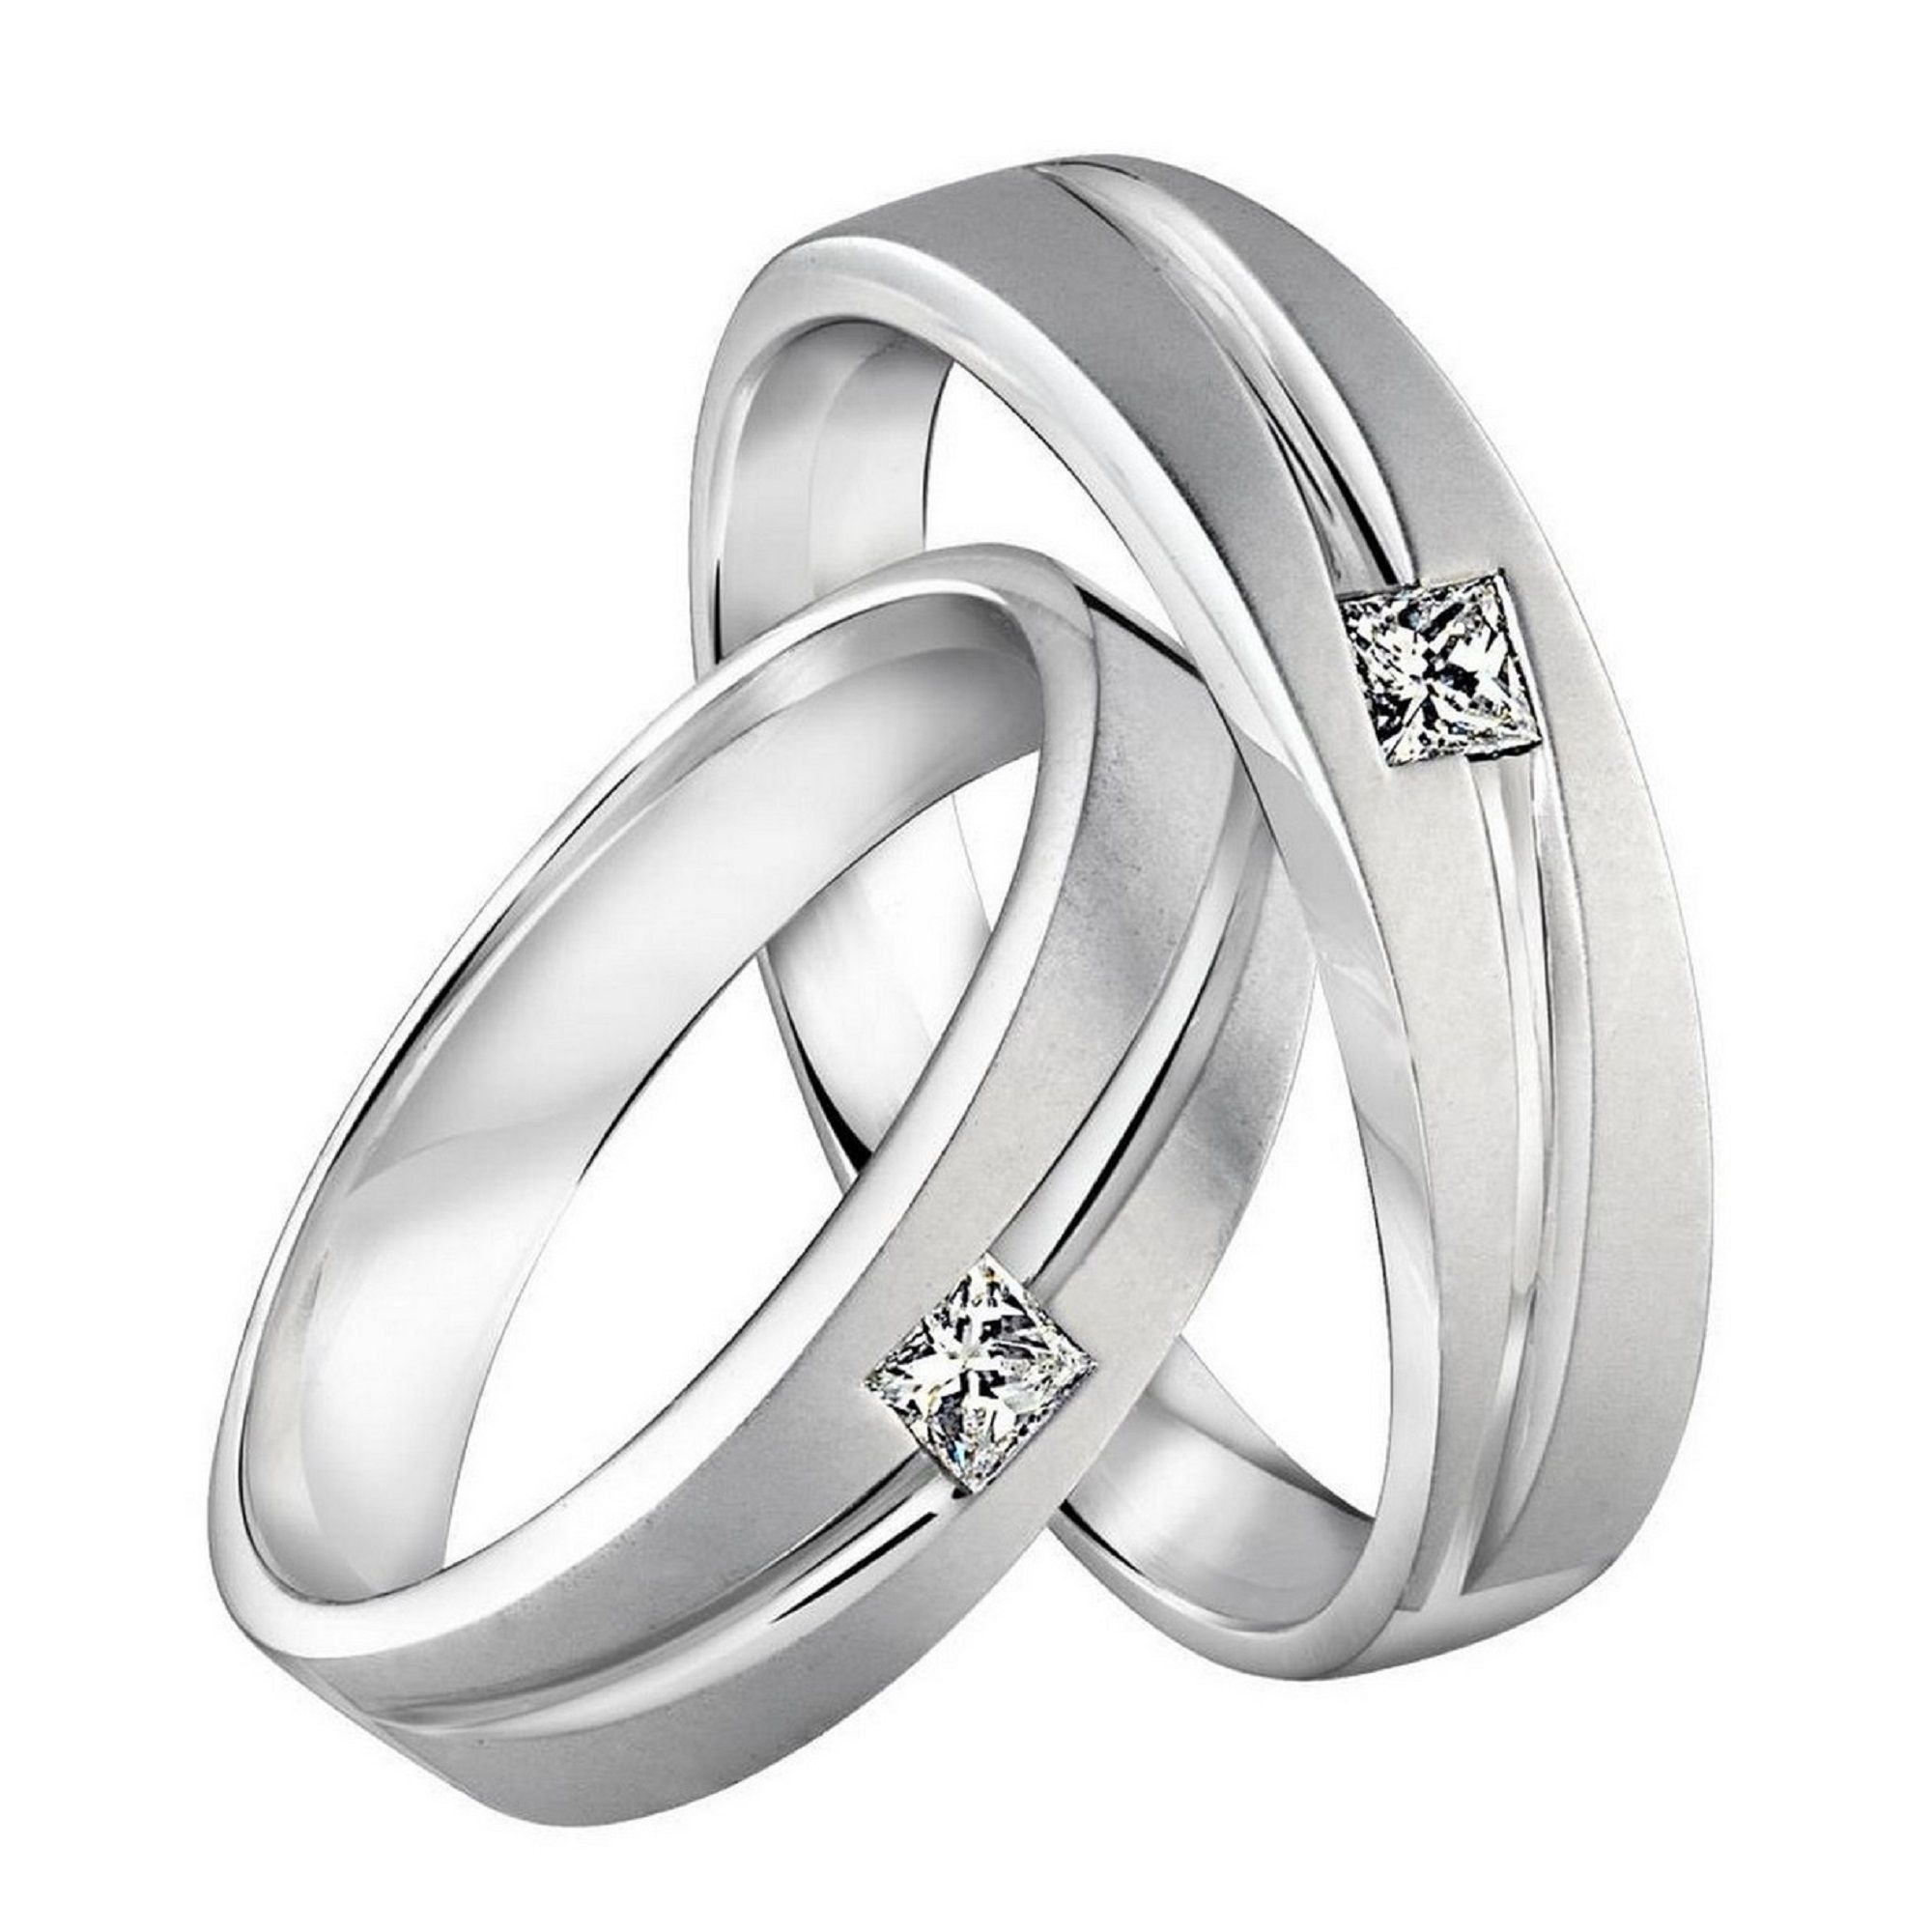 Simple Wedding Ring Designs White Gold Mens Wedding Rings Wedding Ring Designs White Gold Mens Rings Online